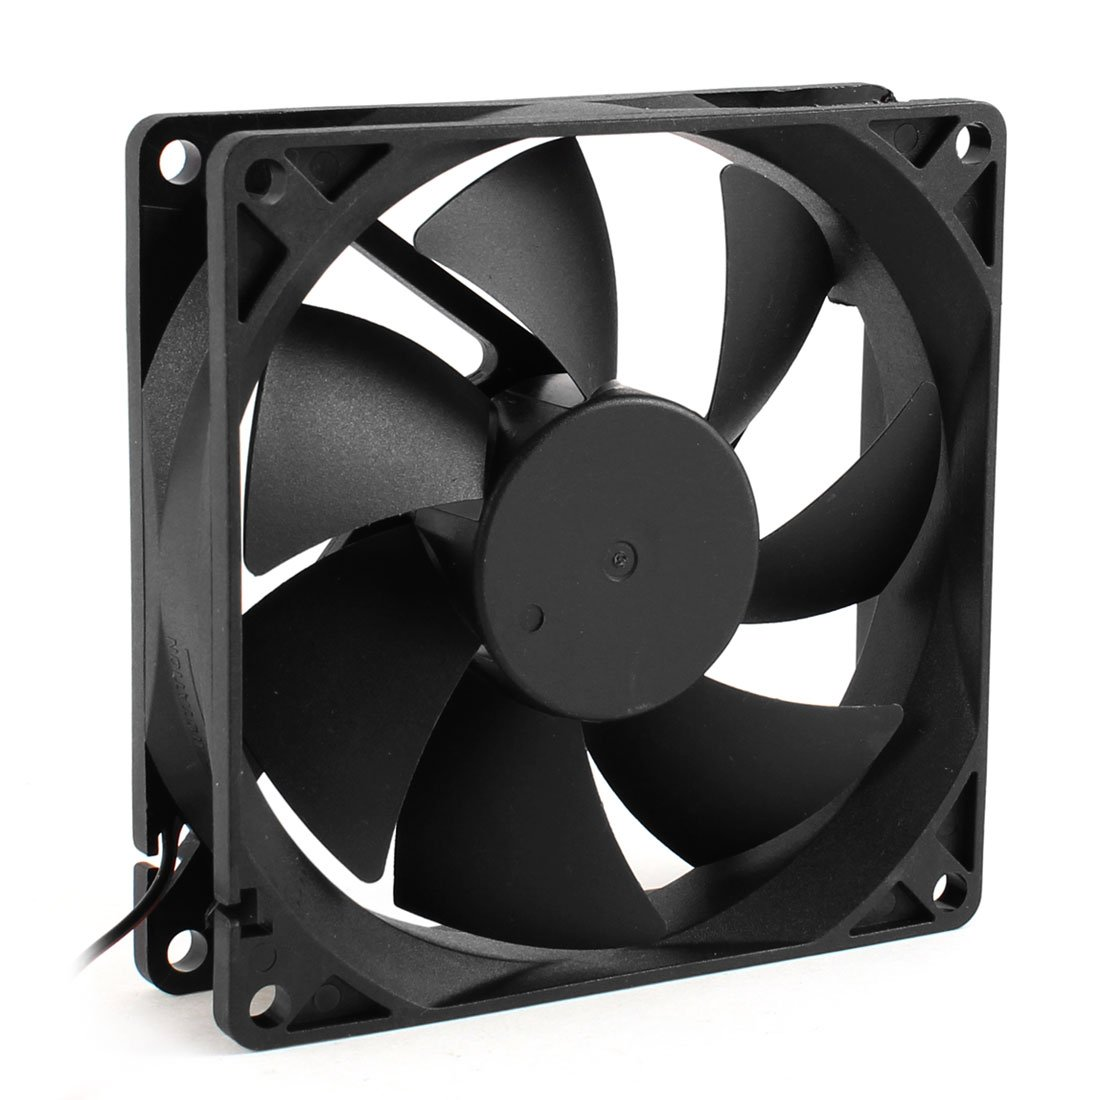 PROMOTION! Hot 92mm X 25mm 24V 2Pin Sleeve Bearing Cooling Fan For PC Case CPU Cooler